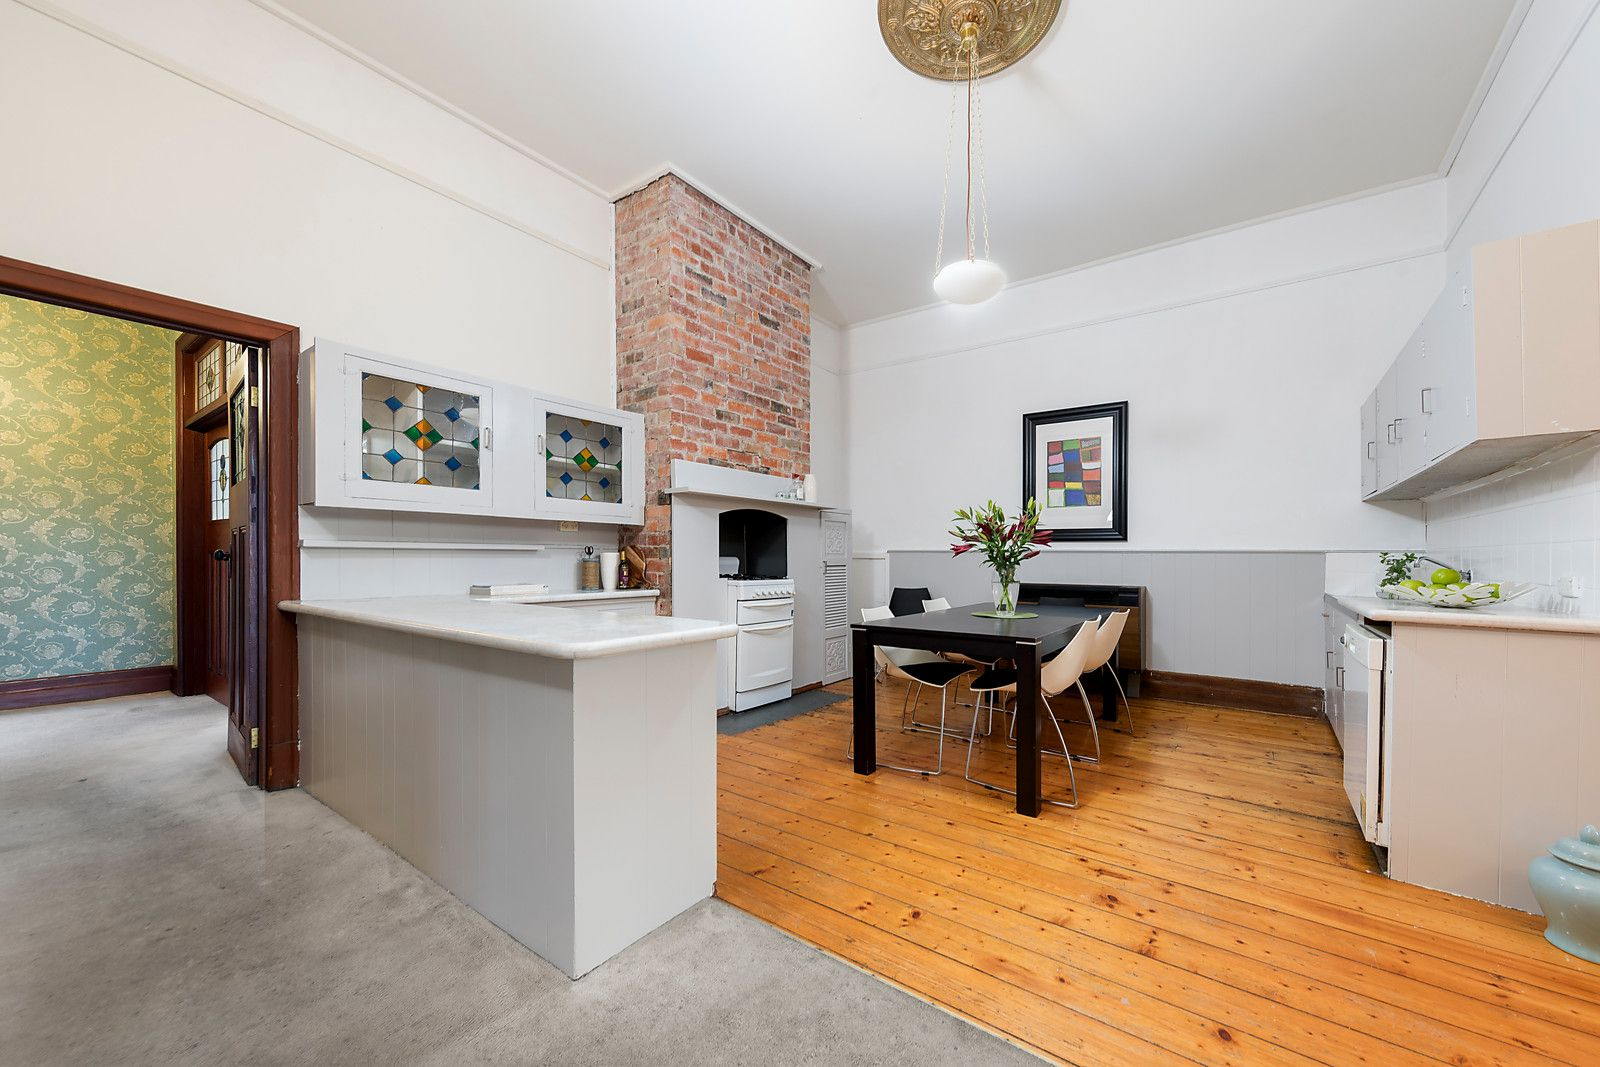 38 The Esplanade, Clifton Hill VIC 3068, Image 2